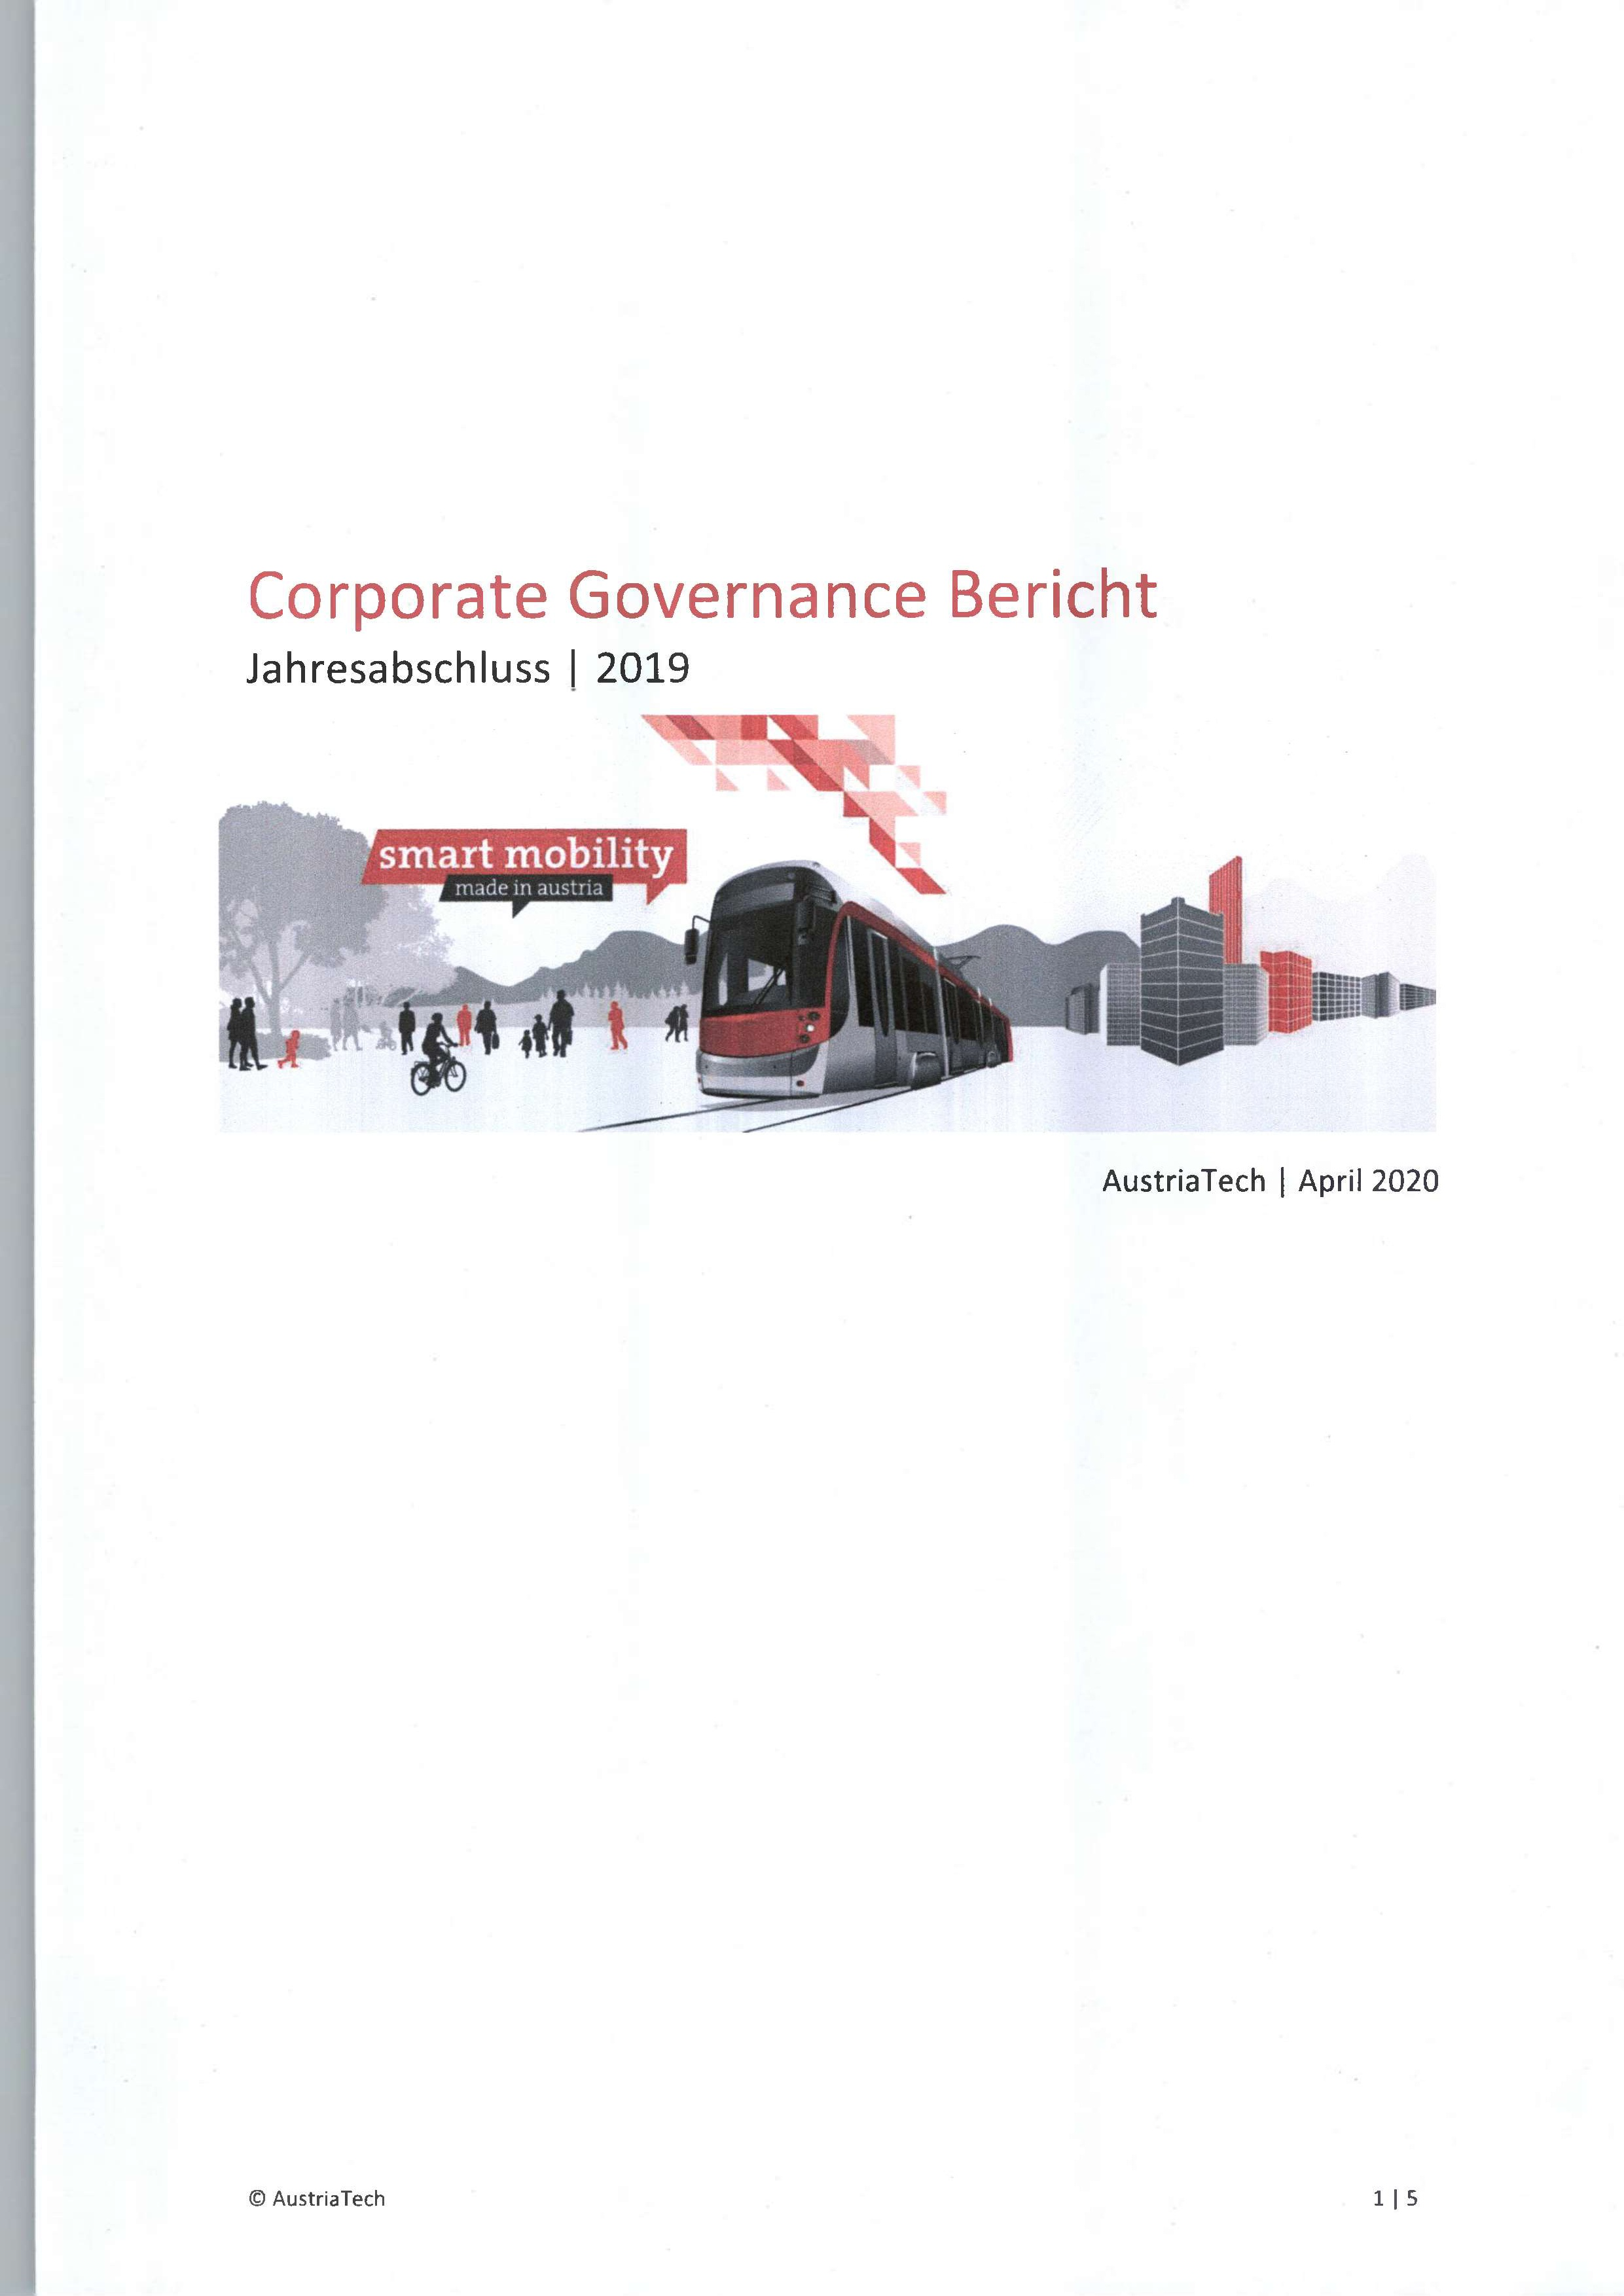 2019 Deckblatt Corporate Governance Bericht